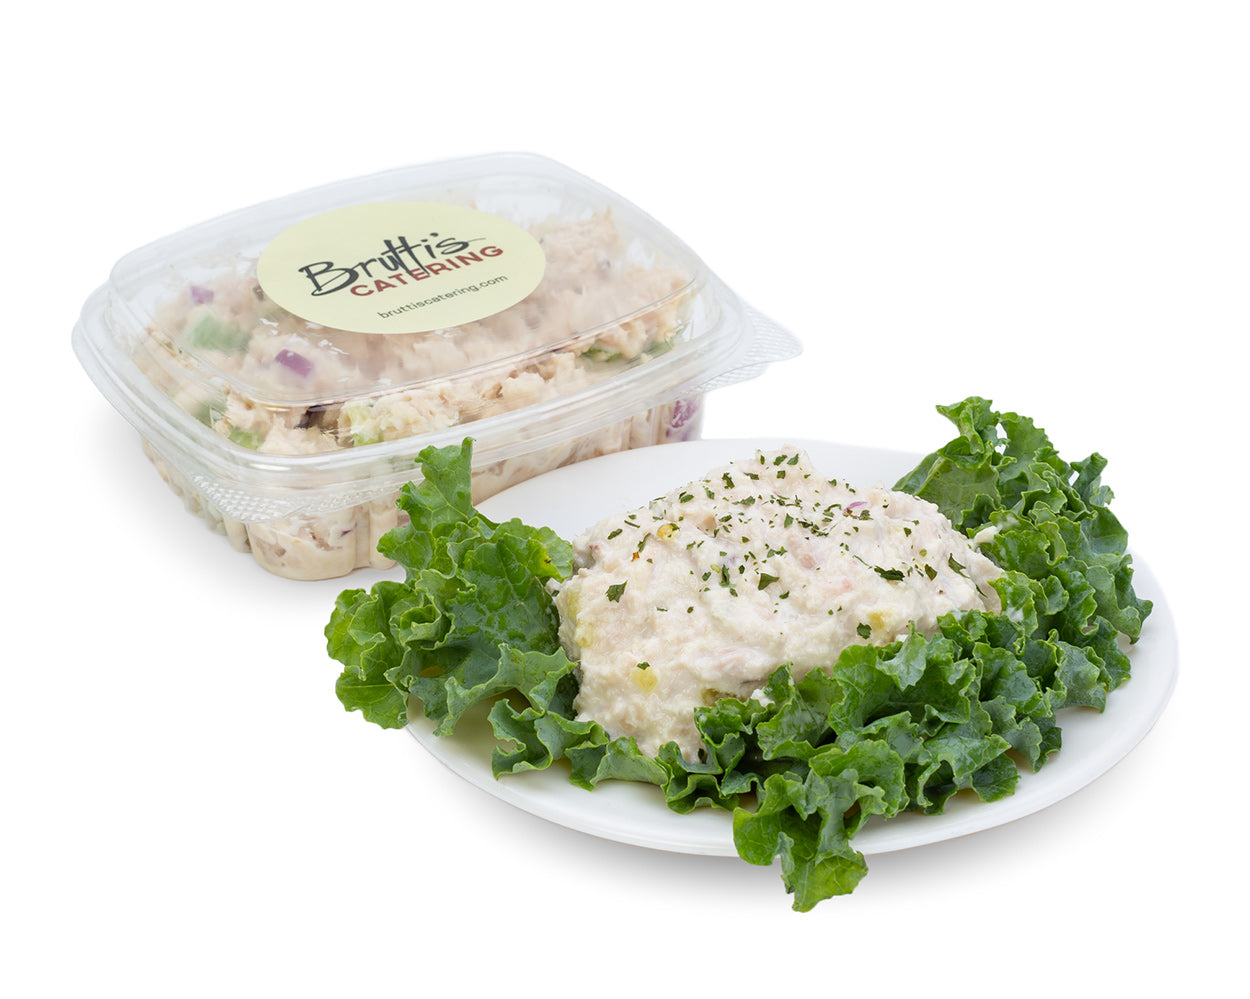 White Albacore Tuna Salad